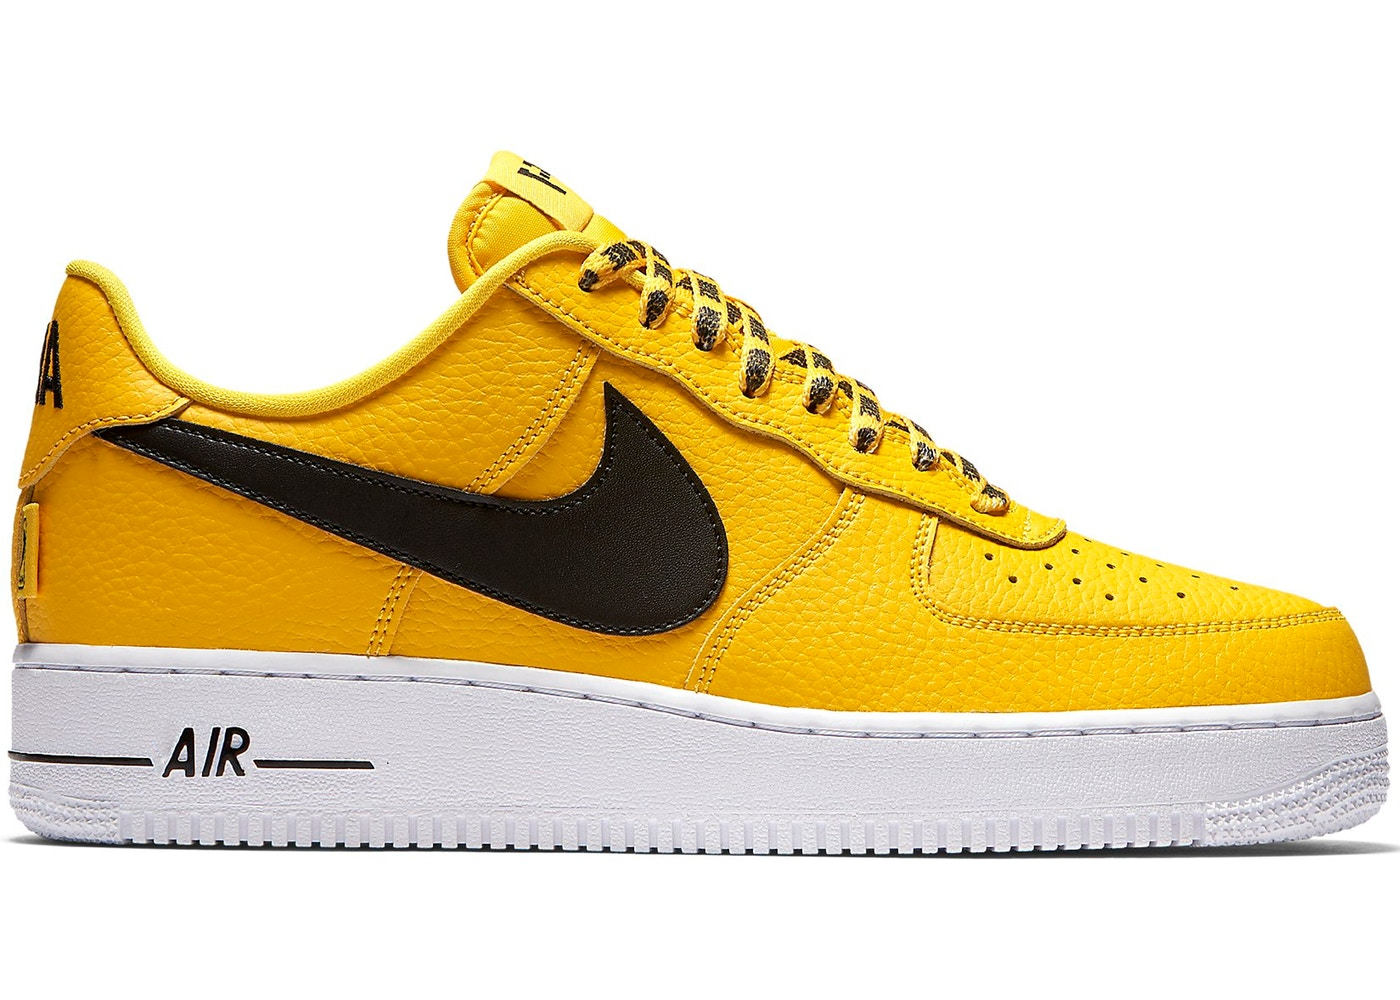 promo code 2e5de 3d217 Air Force 1 Low NBA Amarillo - 823511-701